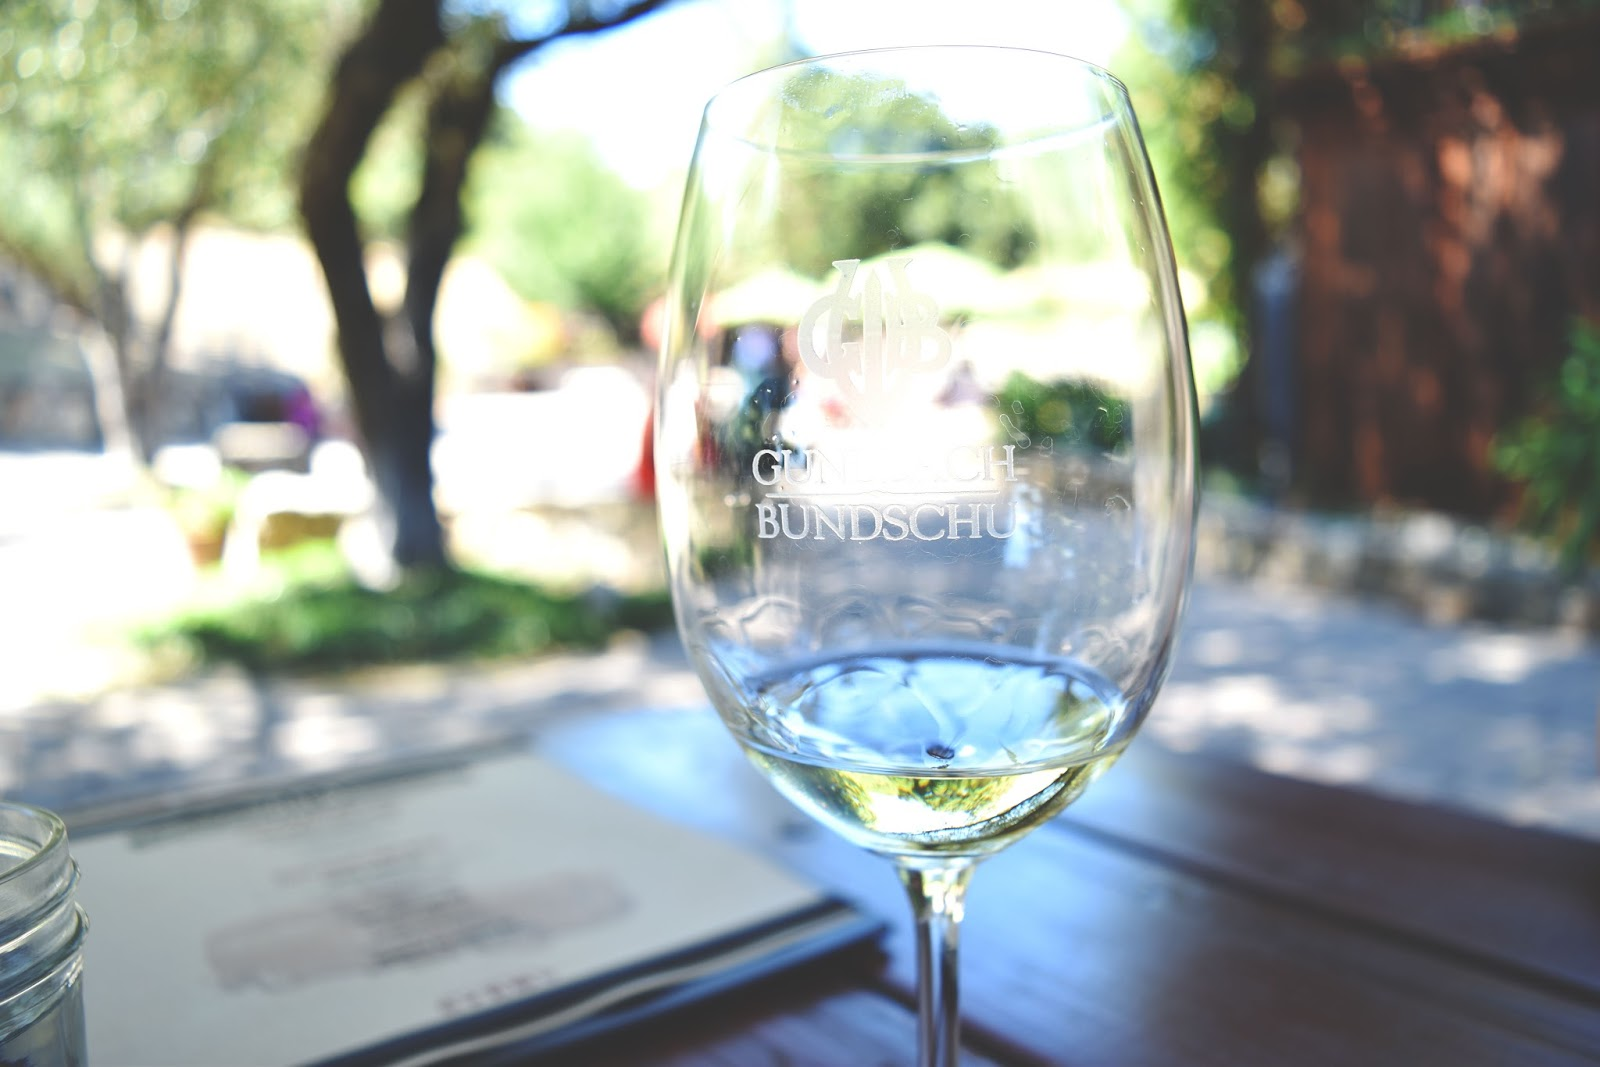 Gundlach Bundschu - a winery in Sonoma, California